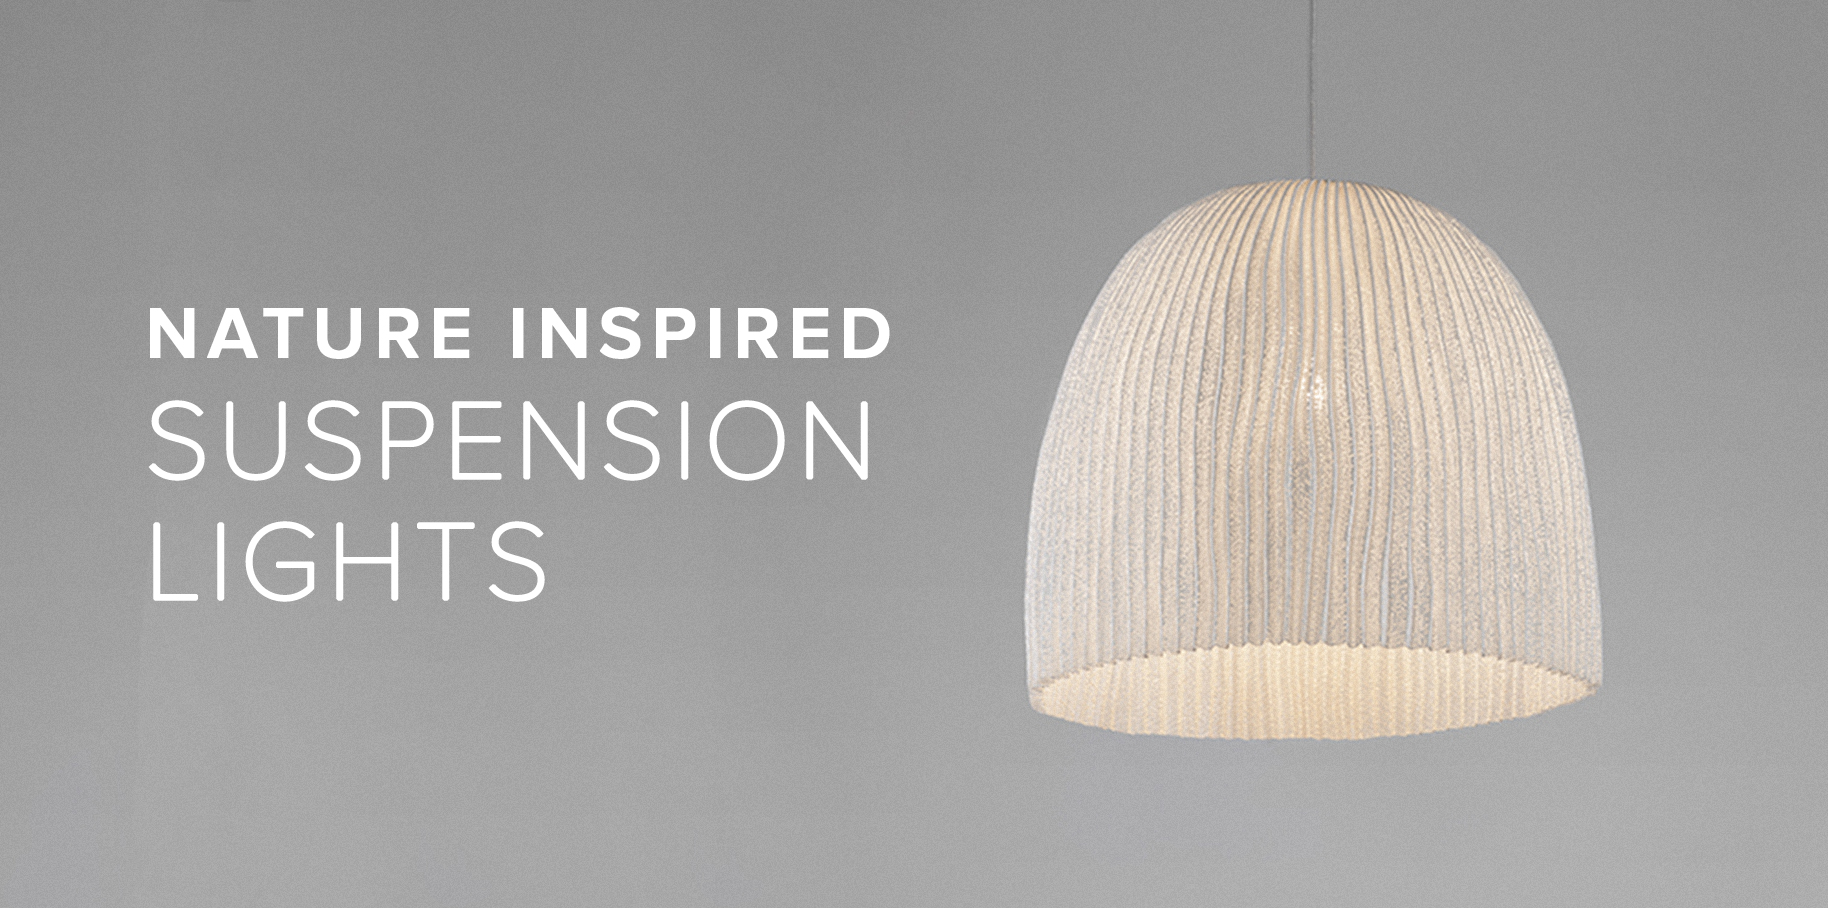 Nature Inspired Suspension Lights